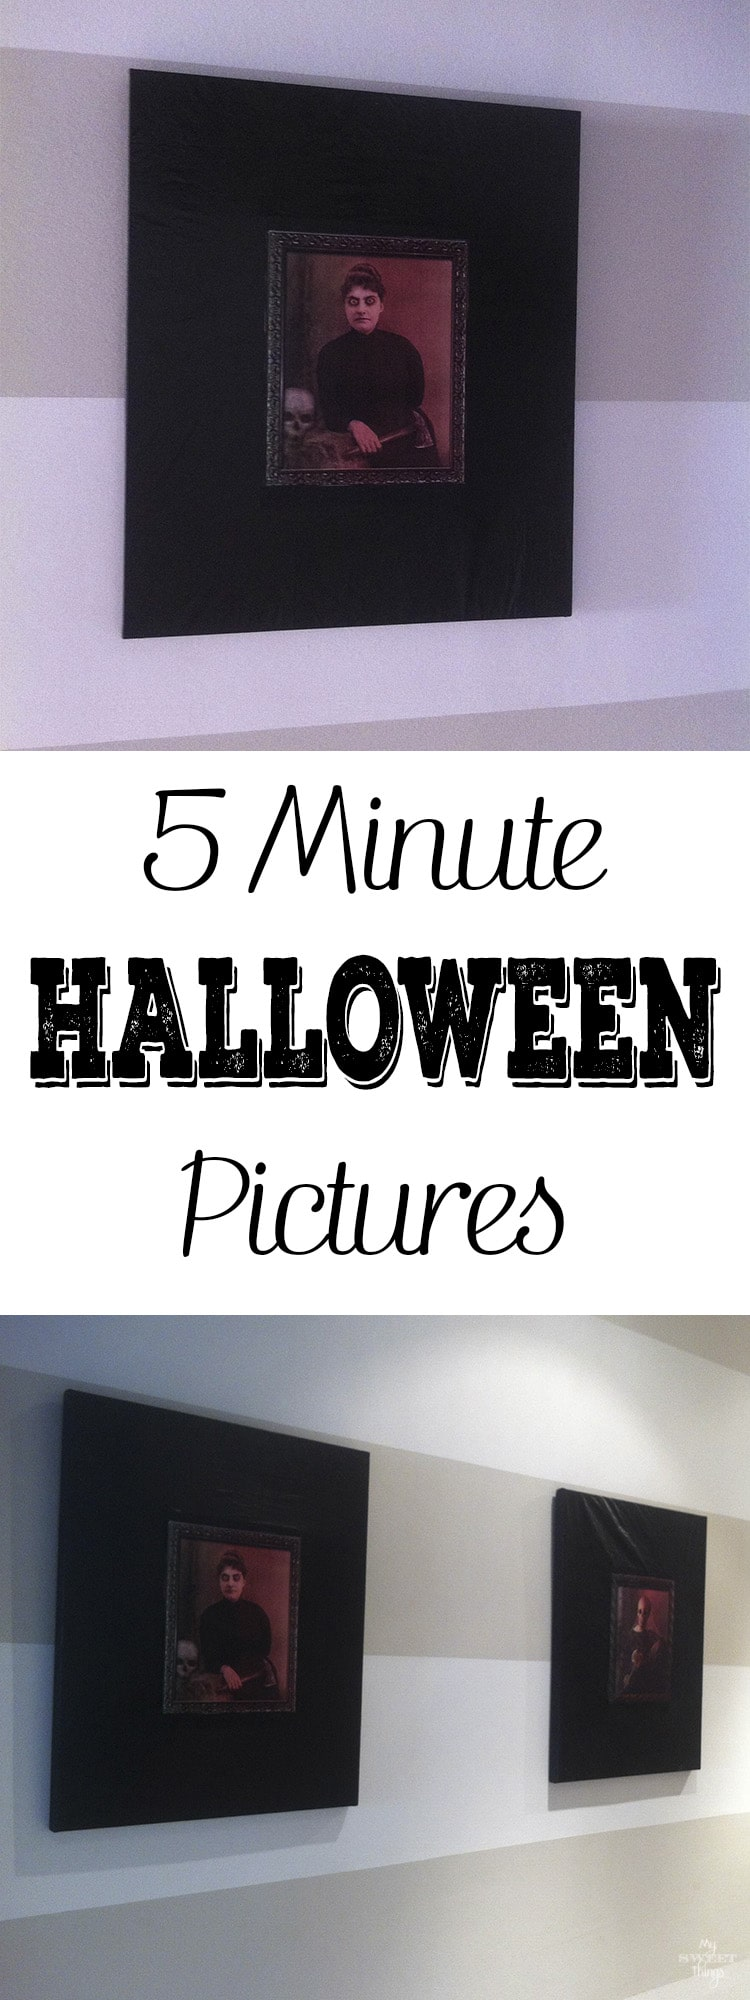 5 Minute Halloween pictures - An easy DIY you can do with your kids as part of your Halloween decor on a budget · Via www.sweethings.net